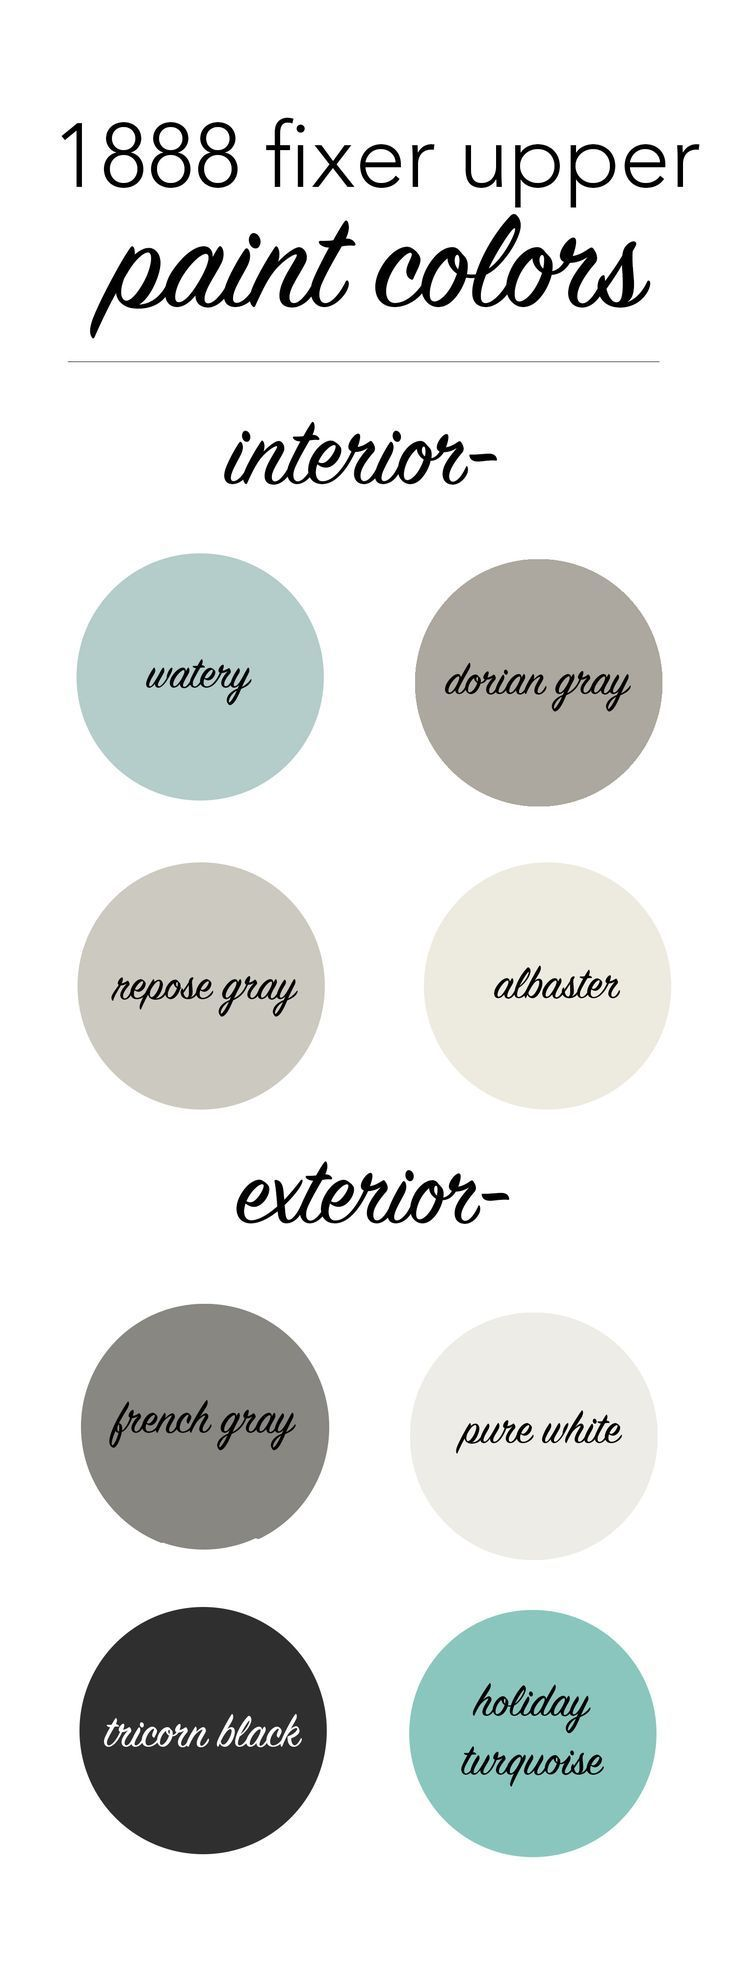 Exterior house paint colors 7 no fail ideas bob vila - 1888 Fixer Upper Interior And Exterior Paint Colors